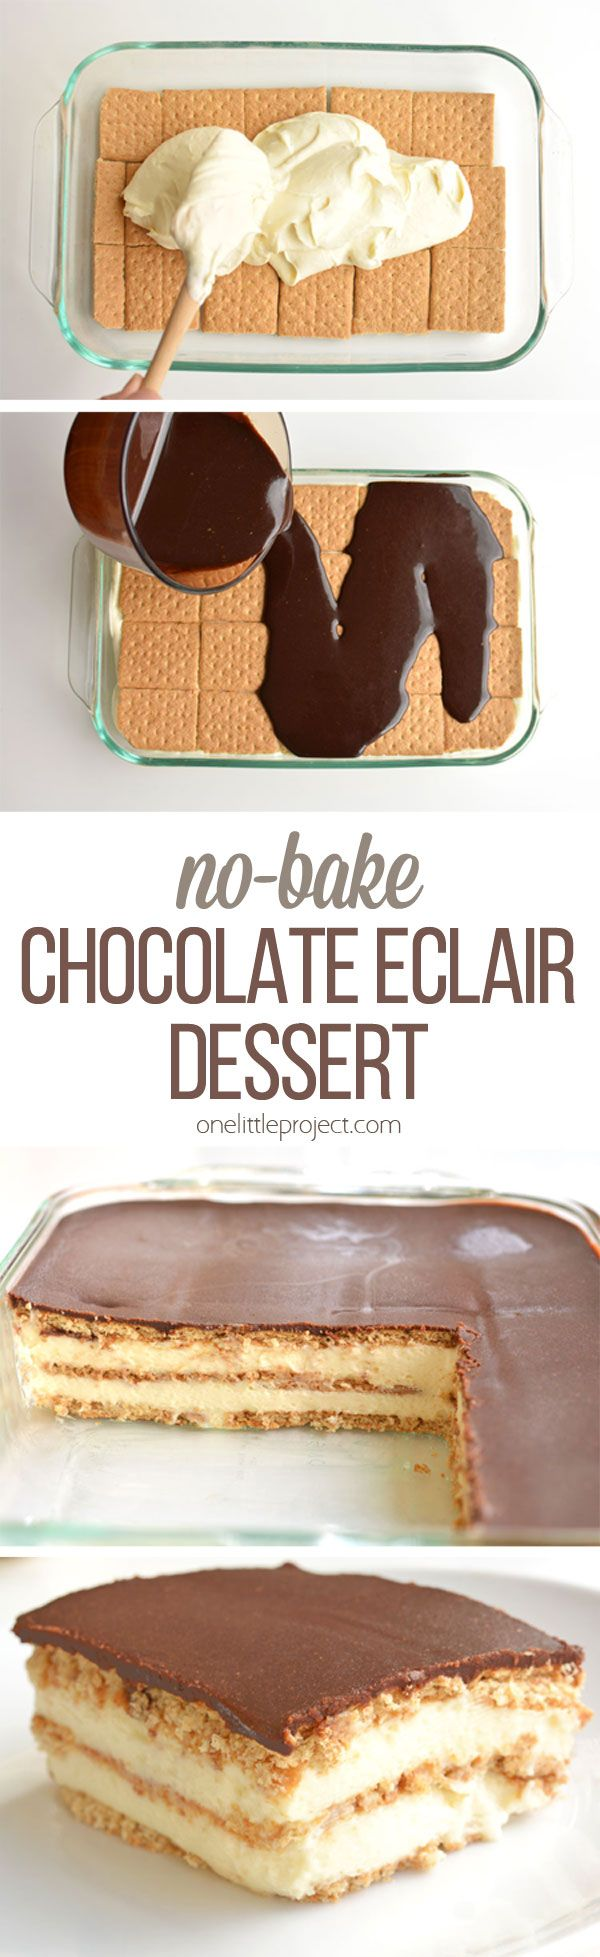 This chocolate eclair cake is such an easy dessert! And it tastes AMAZING with…